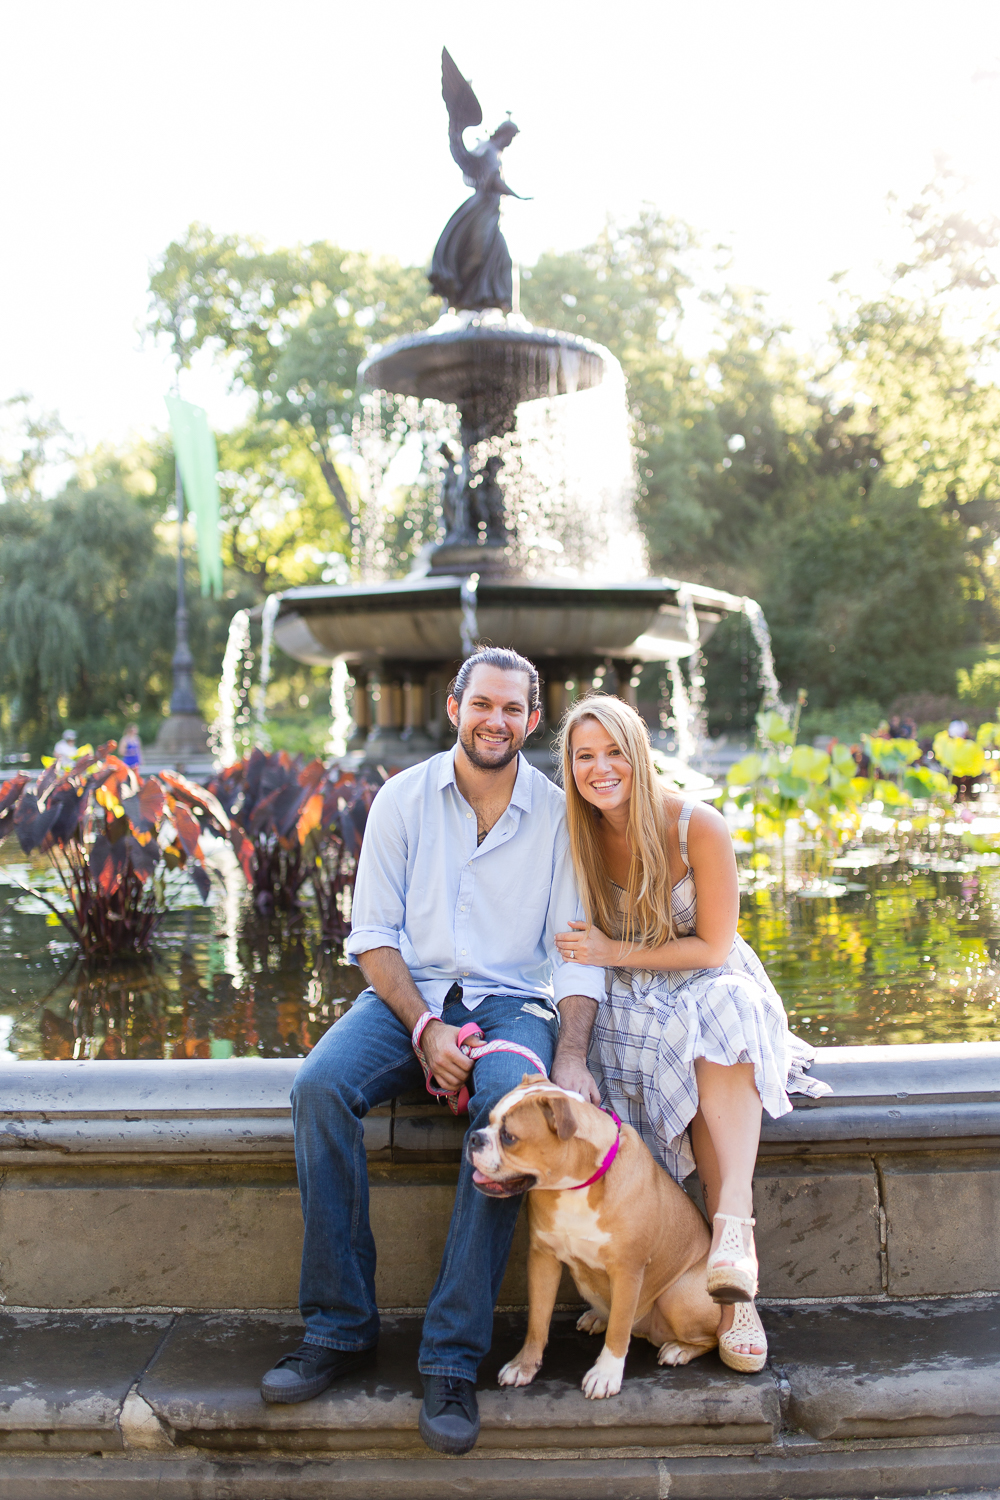 nyc-central-park-bethesda-fountain-engagement-session-3.jpg